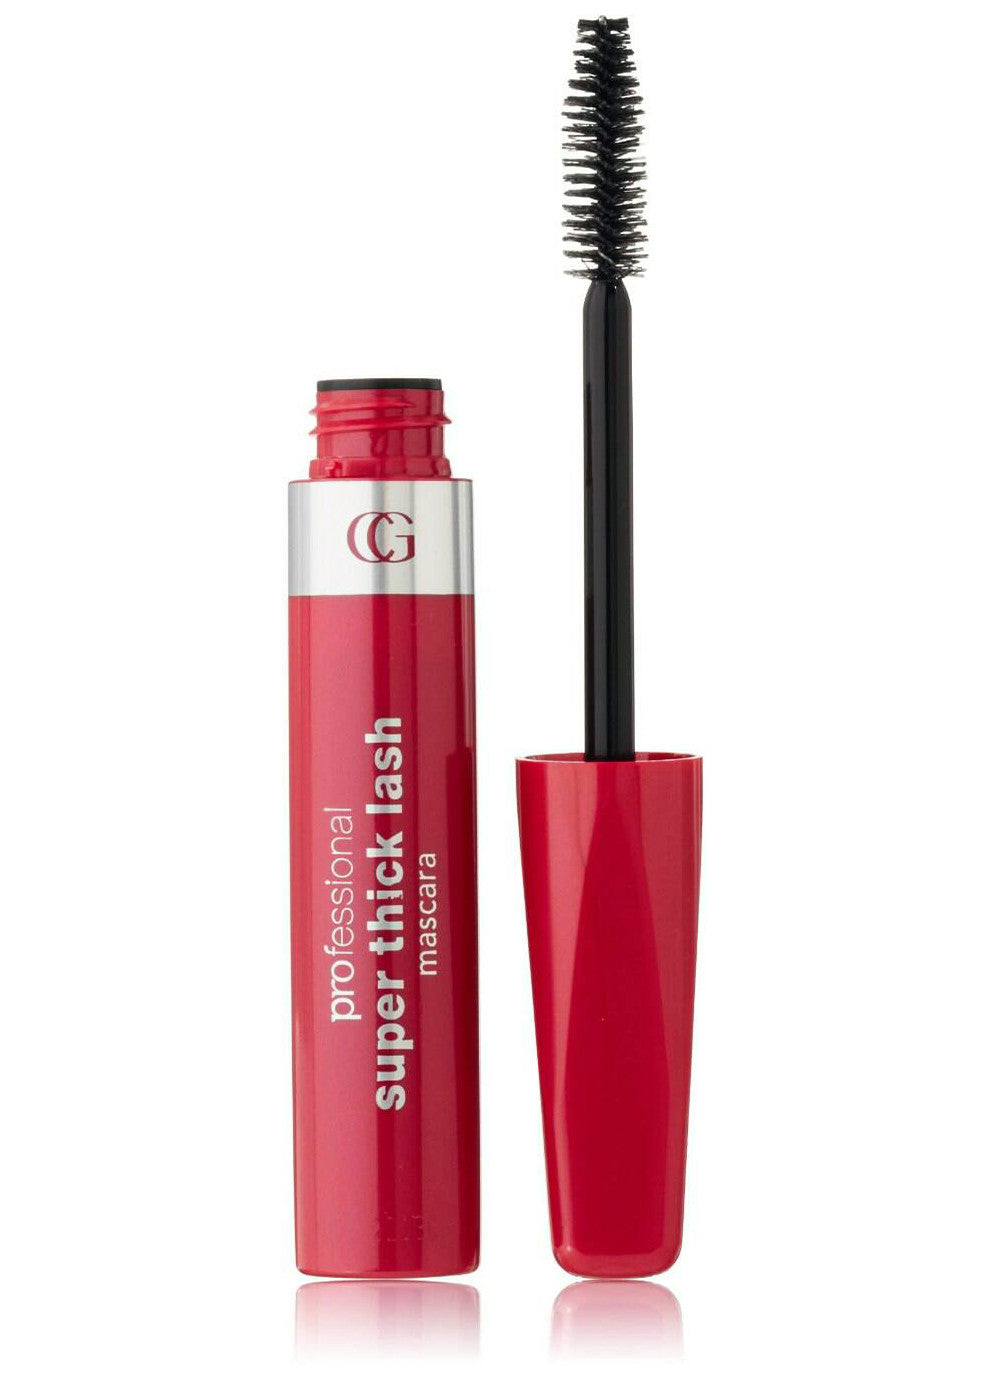 CoverGirl Professional Super Thick Lash Smudge Proof Mascara #305 Black